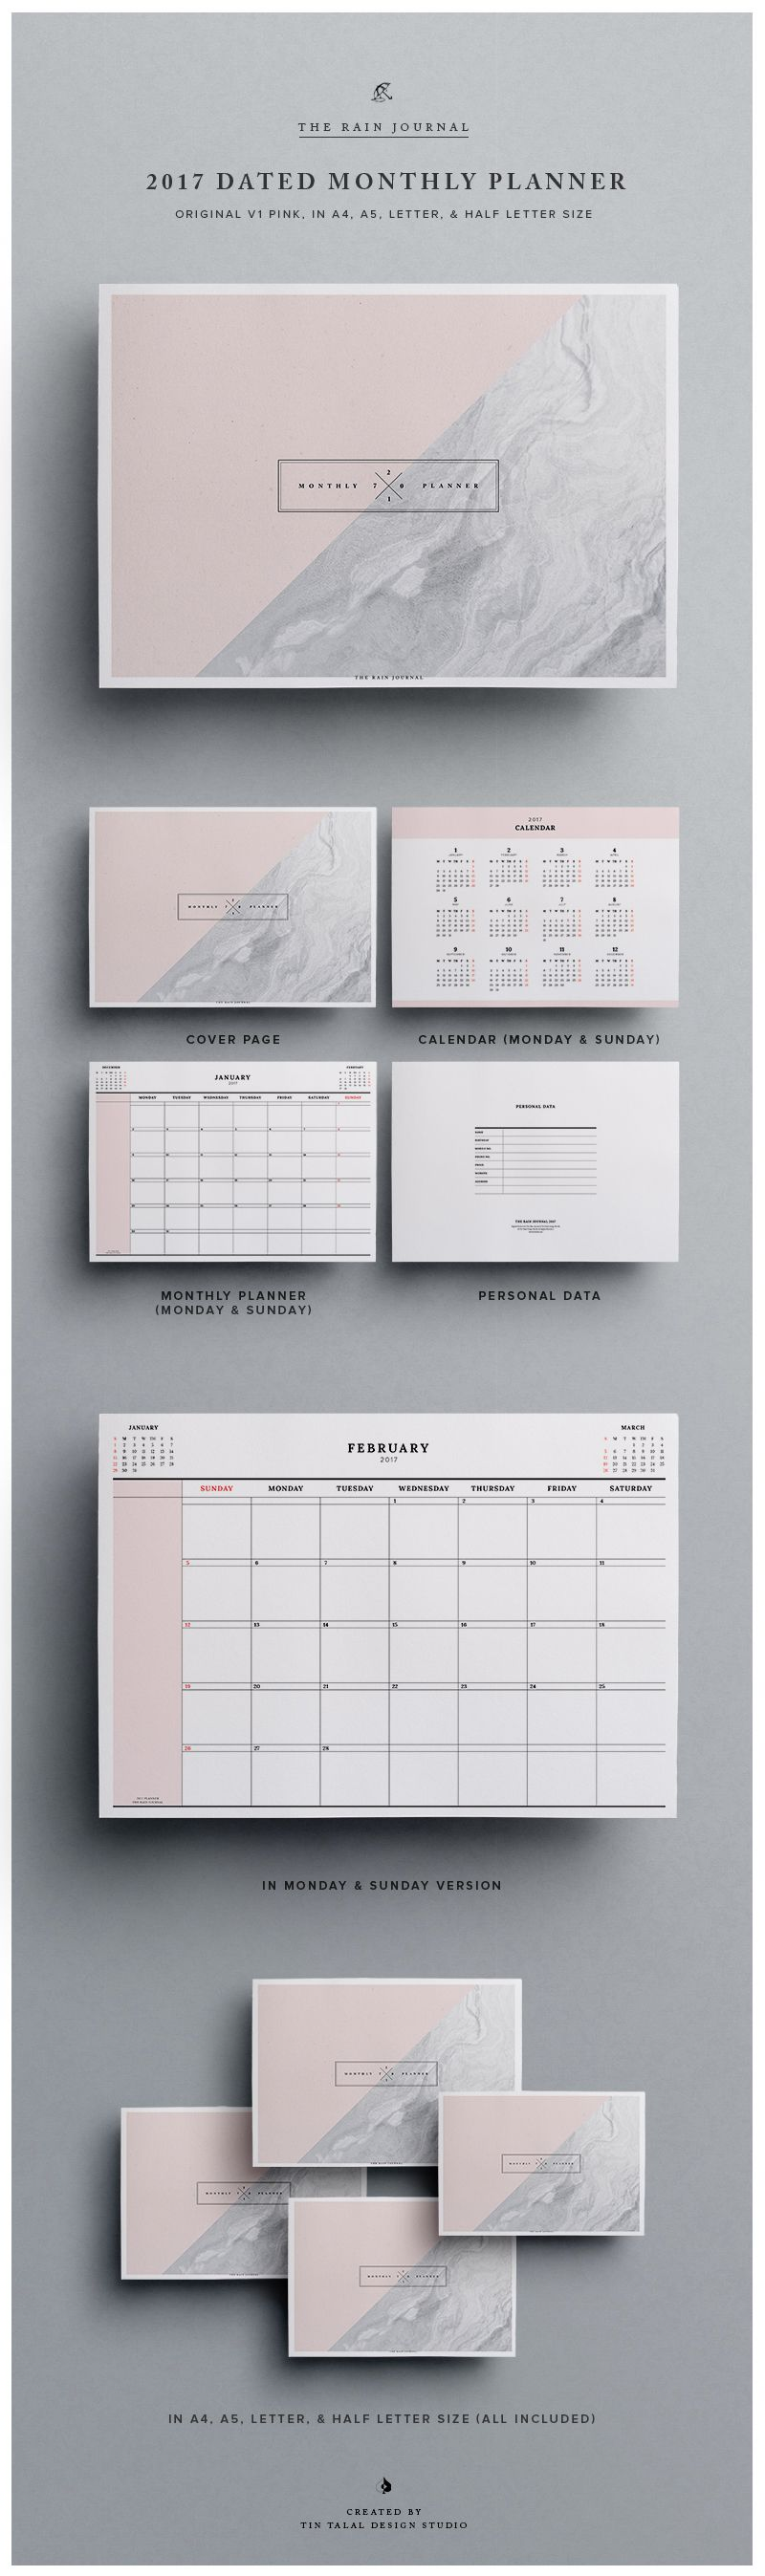 printable 2017 dated monthly planner wall planner or desk planner